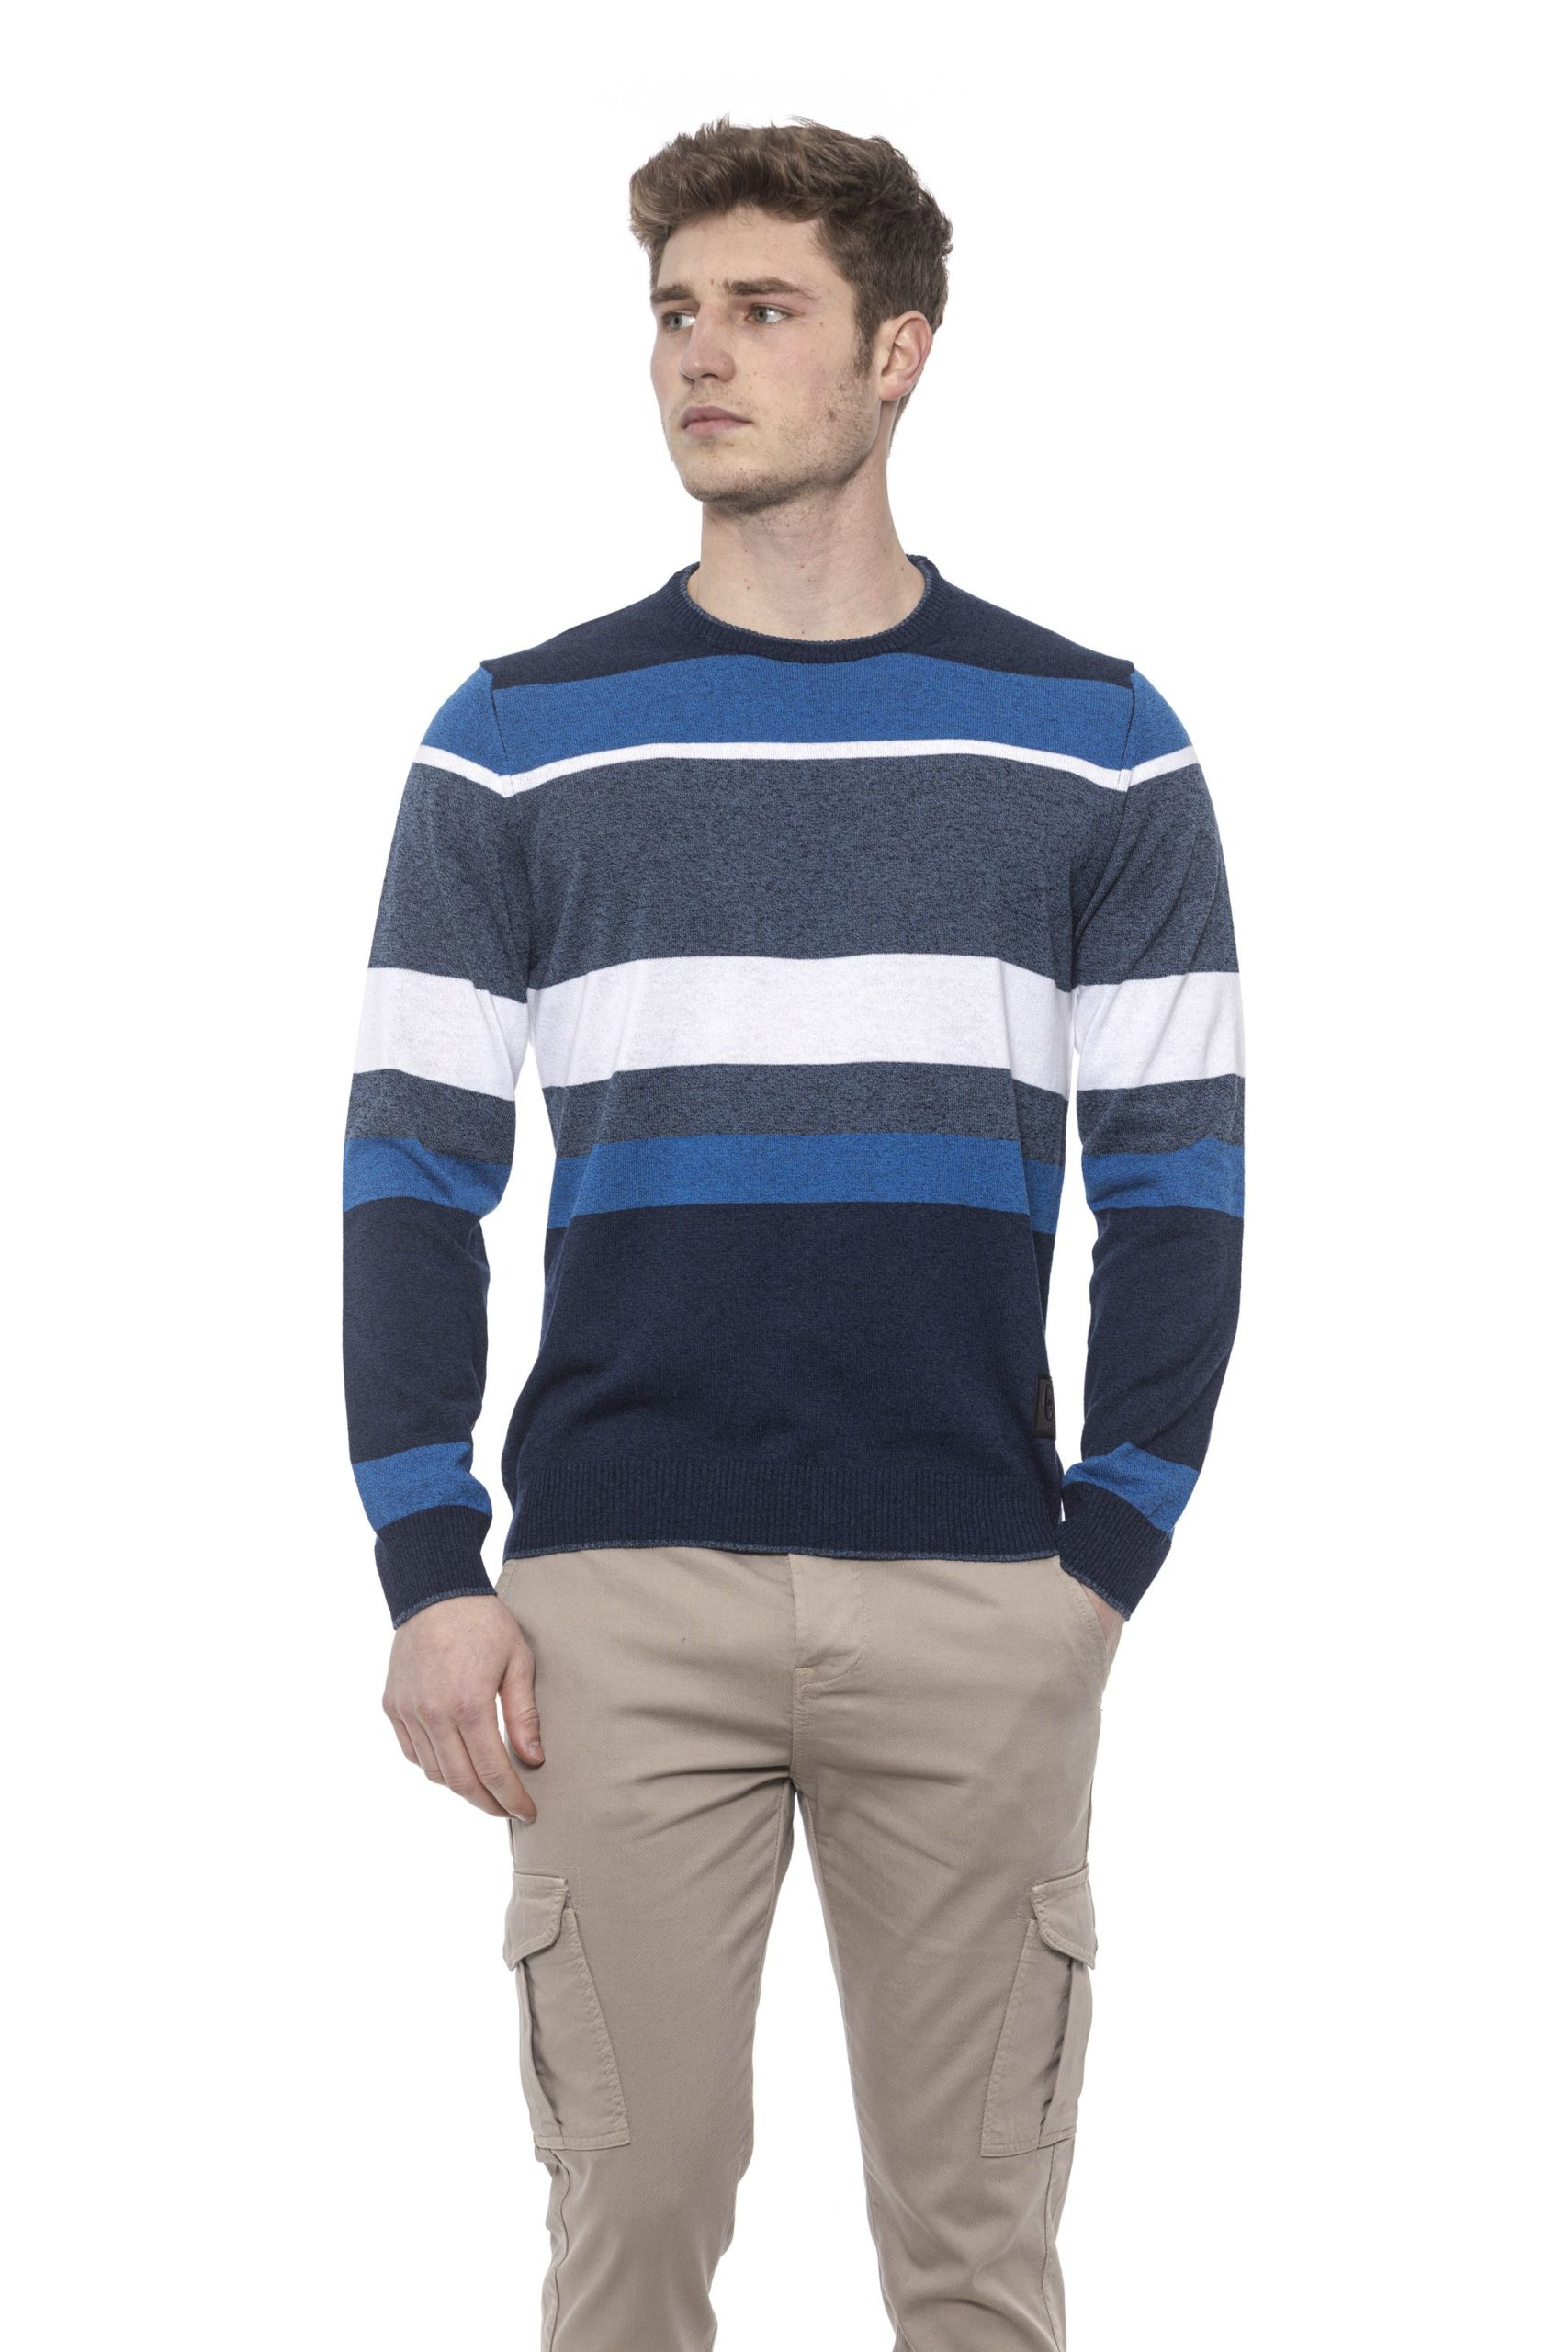 Conte of Florence Men's Sweater Blue CO1378090 - S